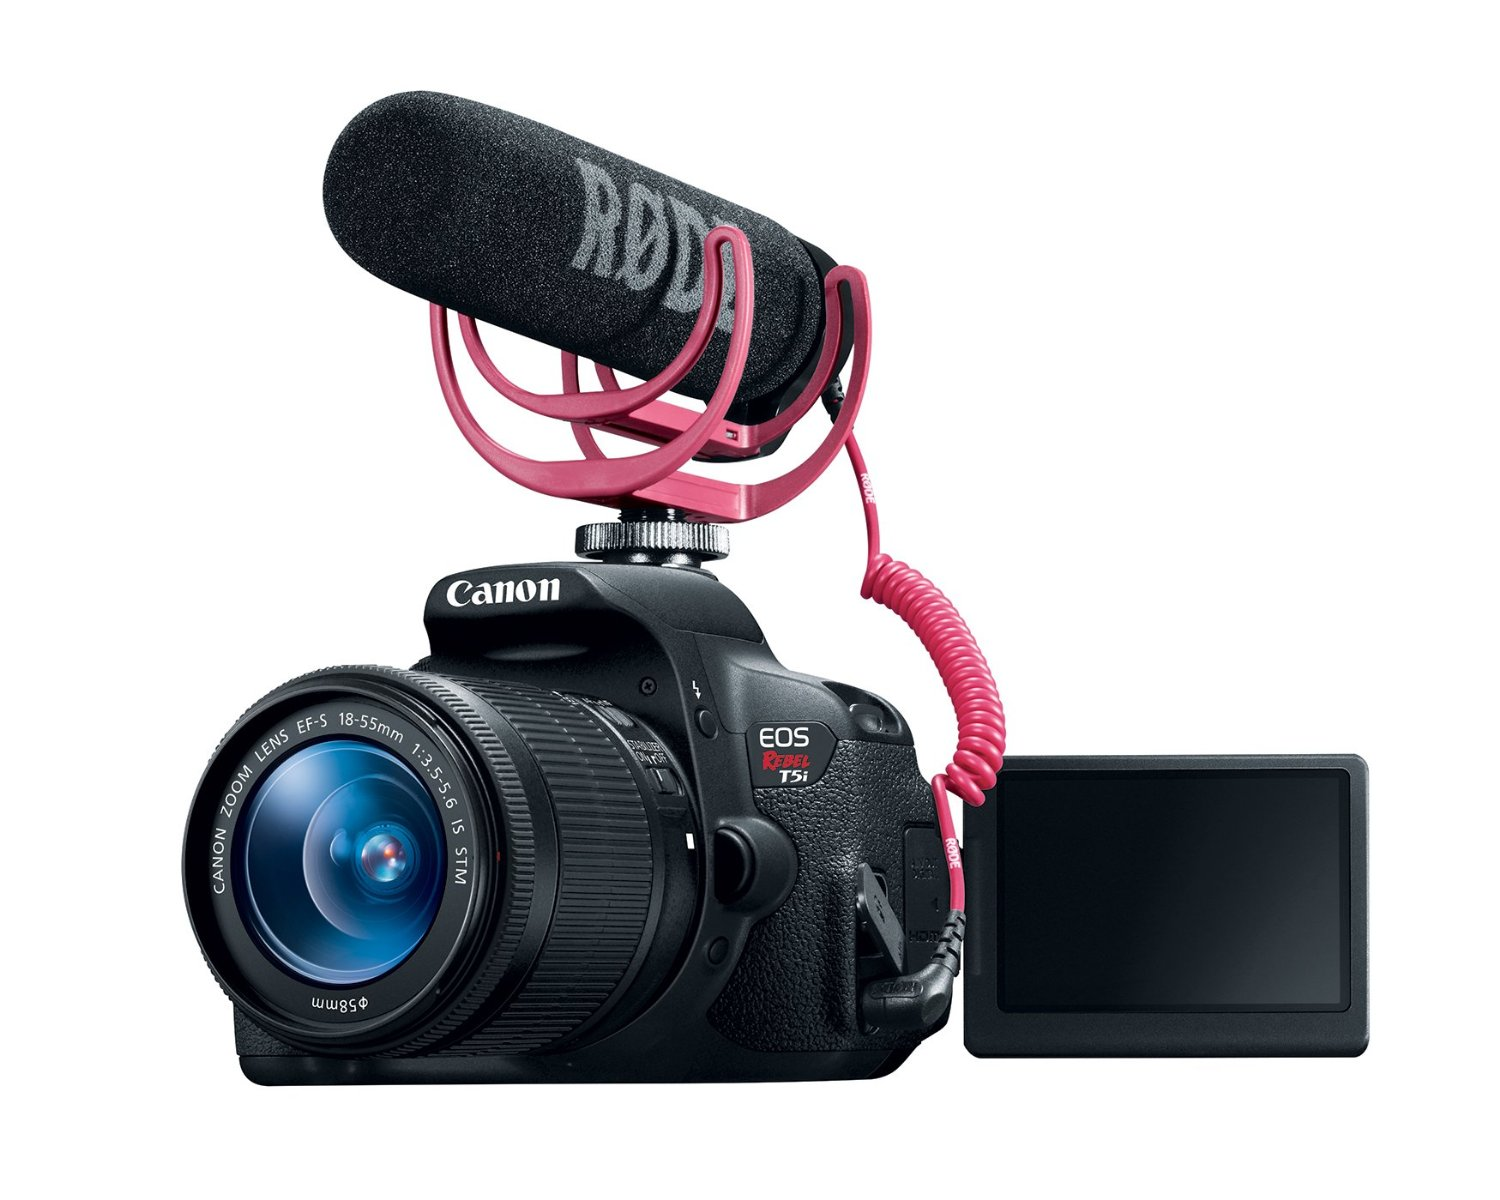 2. Canon EOS Rebel T5i Video Creator Kit